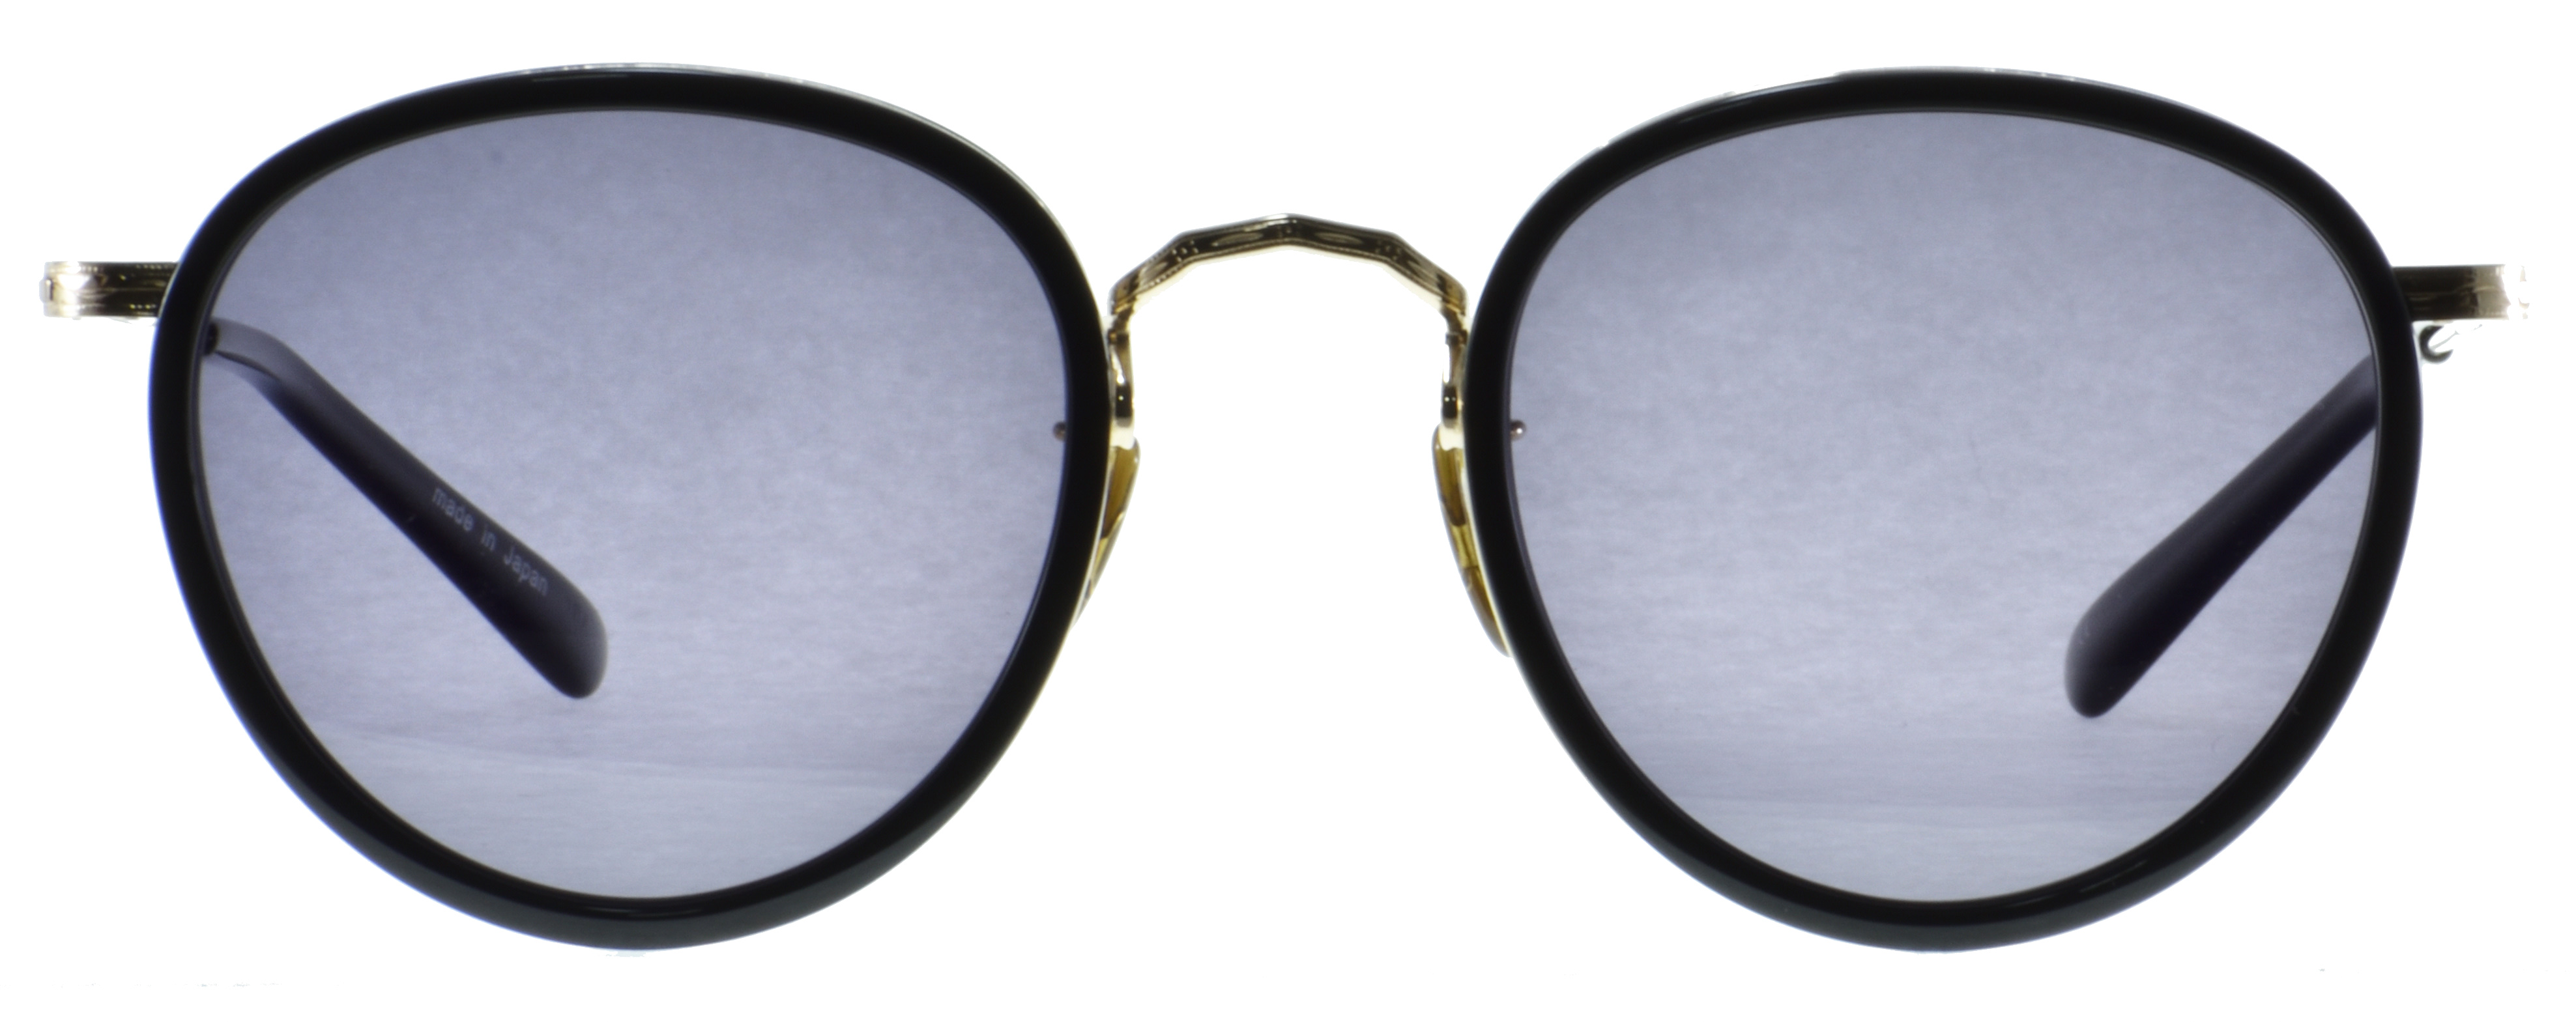 OLIVER PEOPLES MP-2 BK-GRY